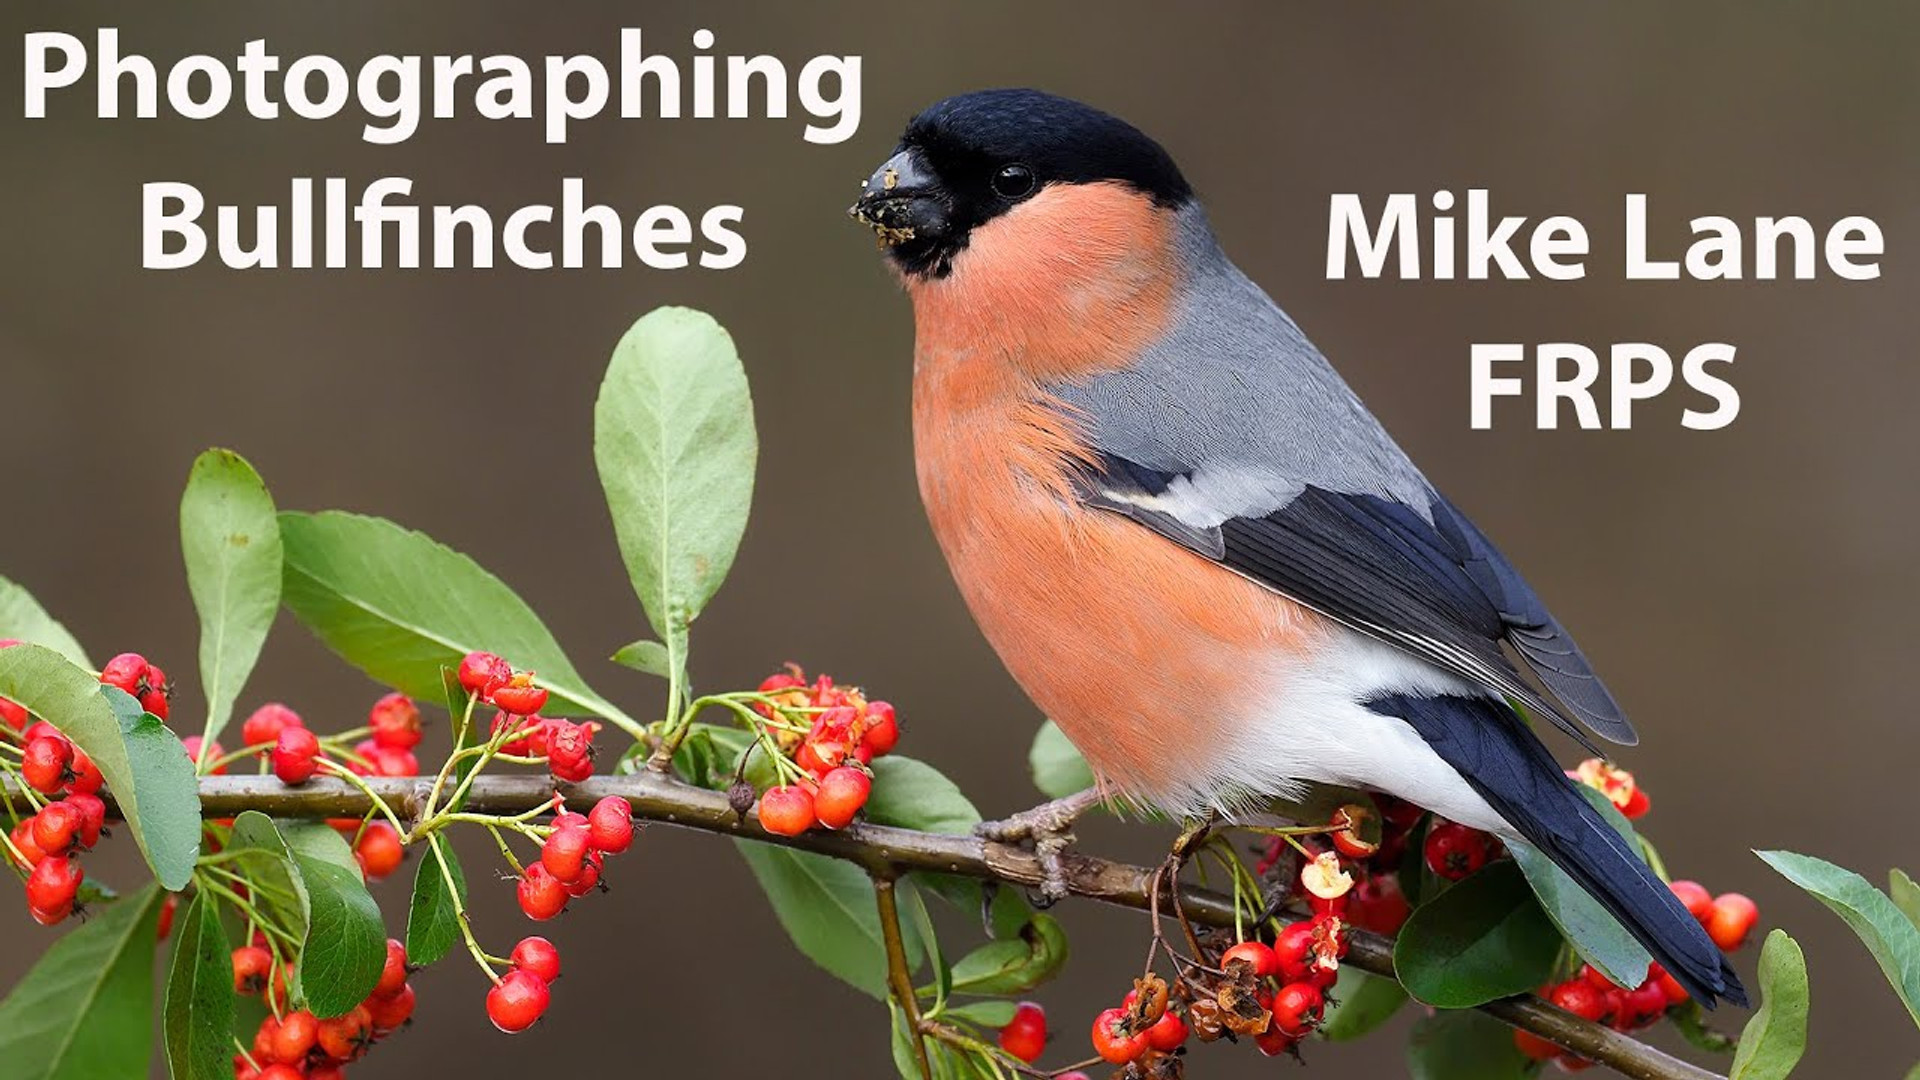 Photographing Bullfinches